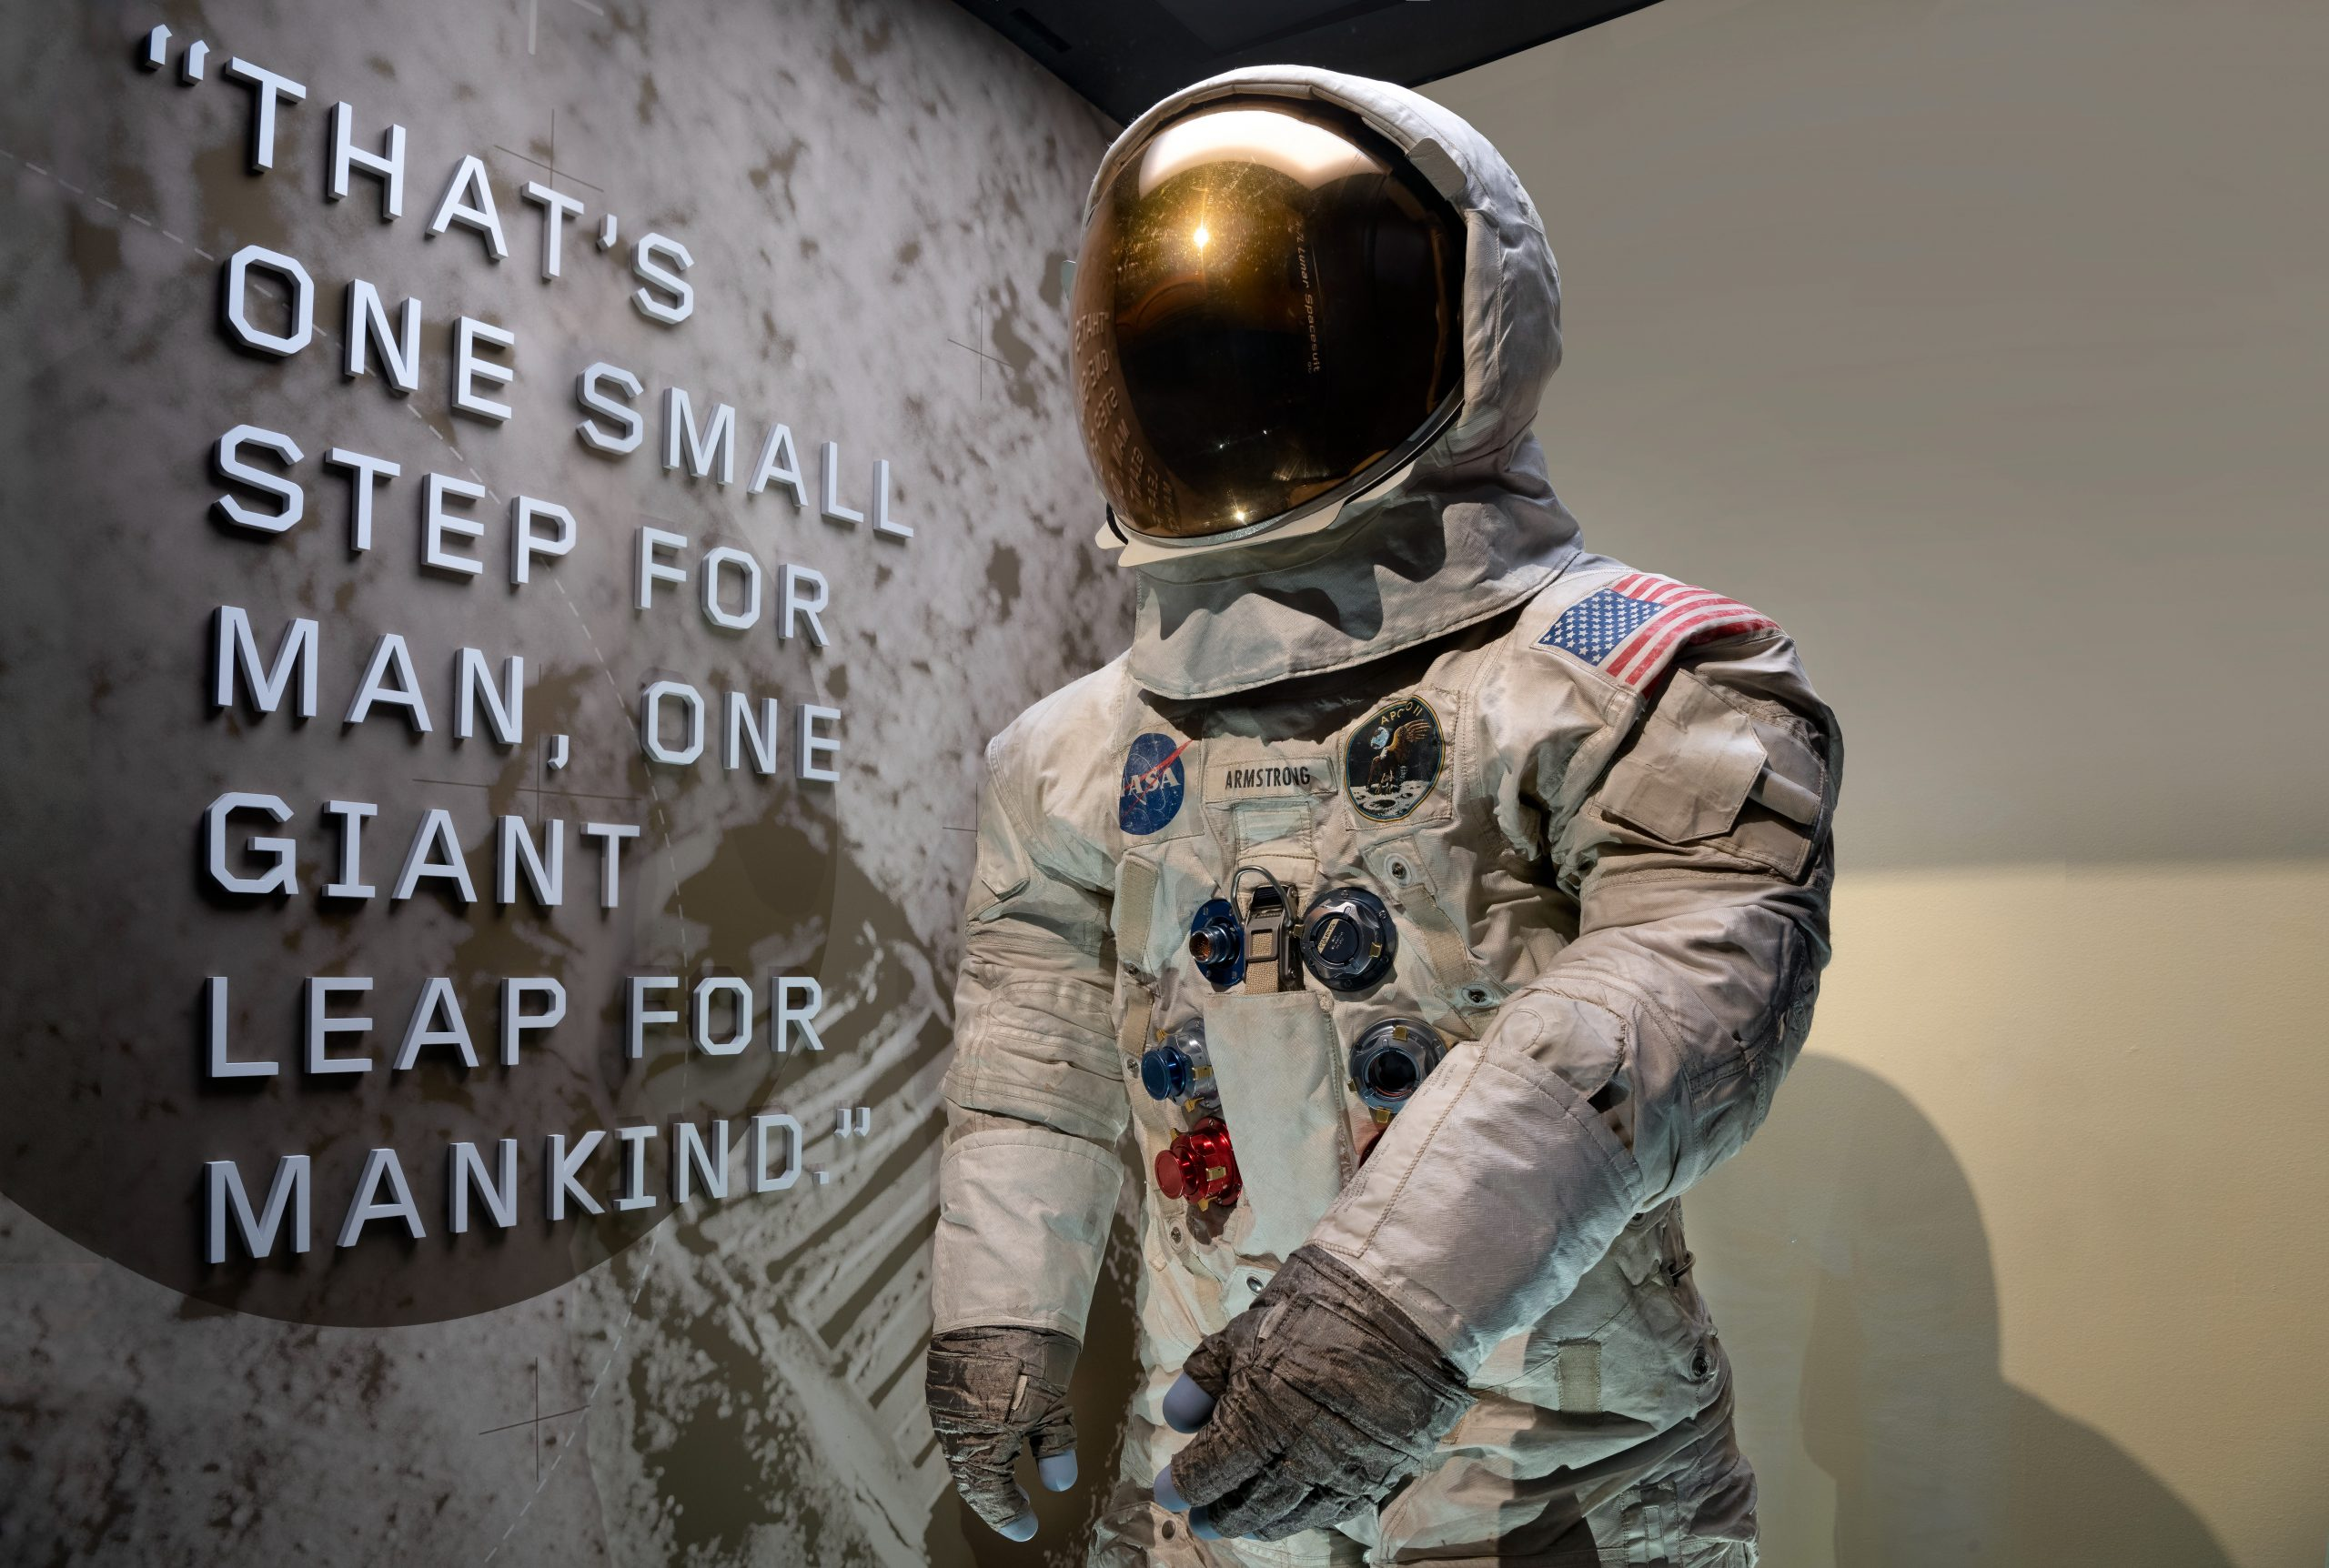 How does the general public benefit from NASA?